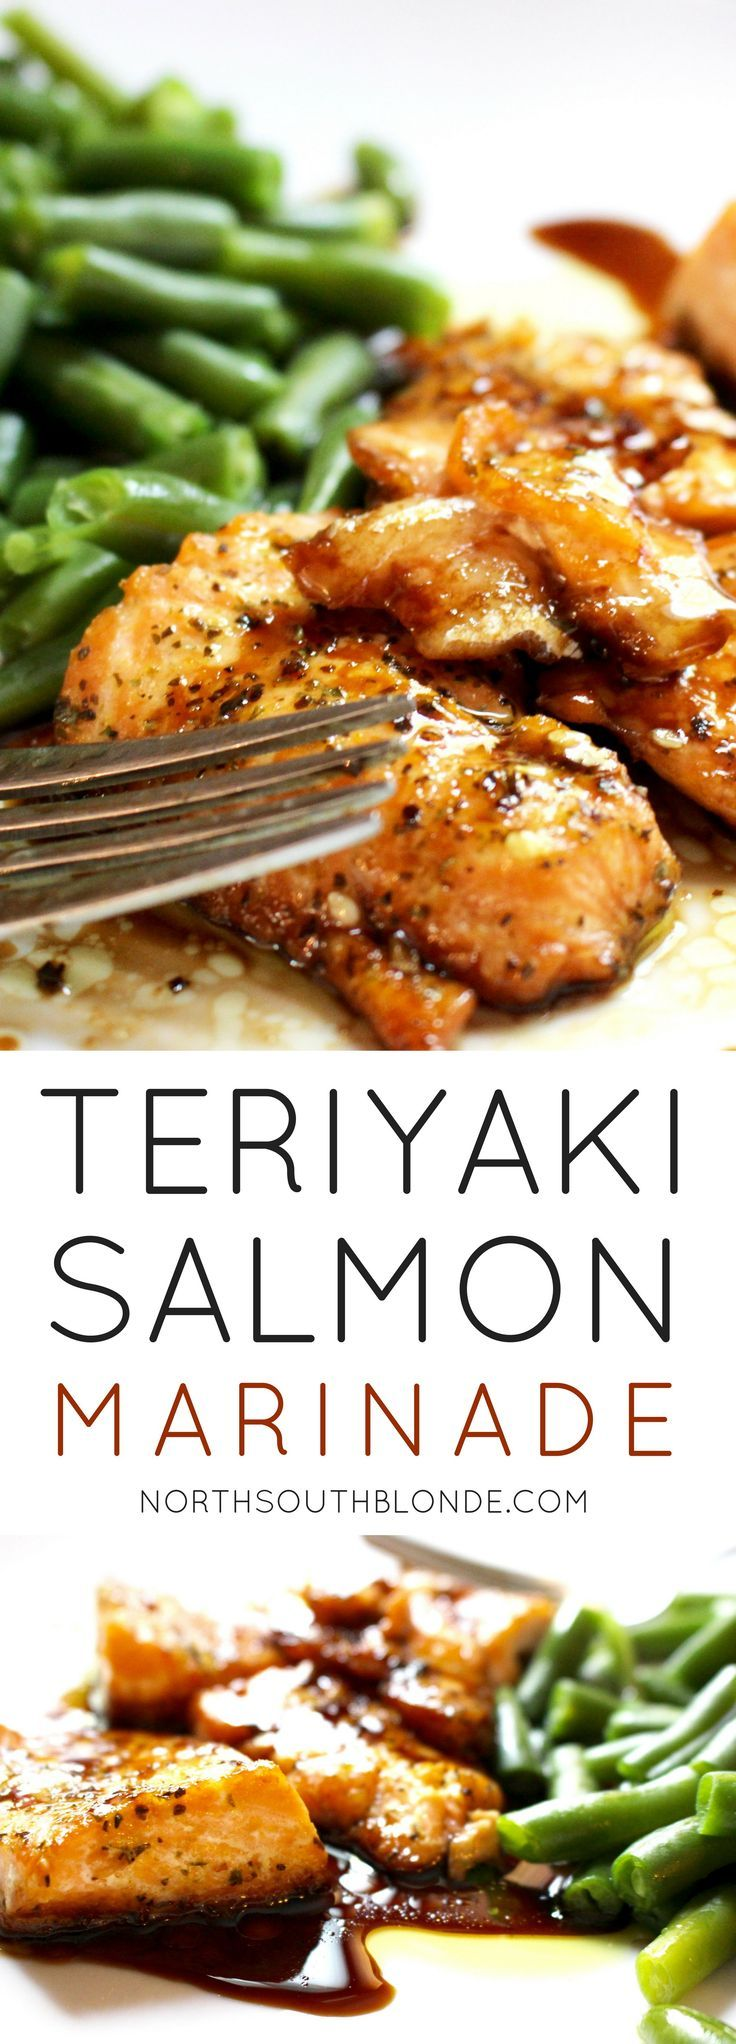 A tasty teriyaki salmon recipe that's sweet enough to get your kids eating healthy. The marinade is super easy to make and involves only a few ingredients!